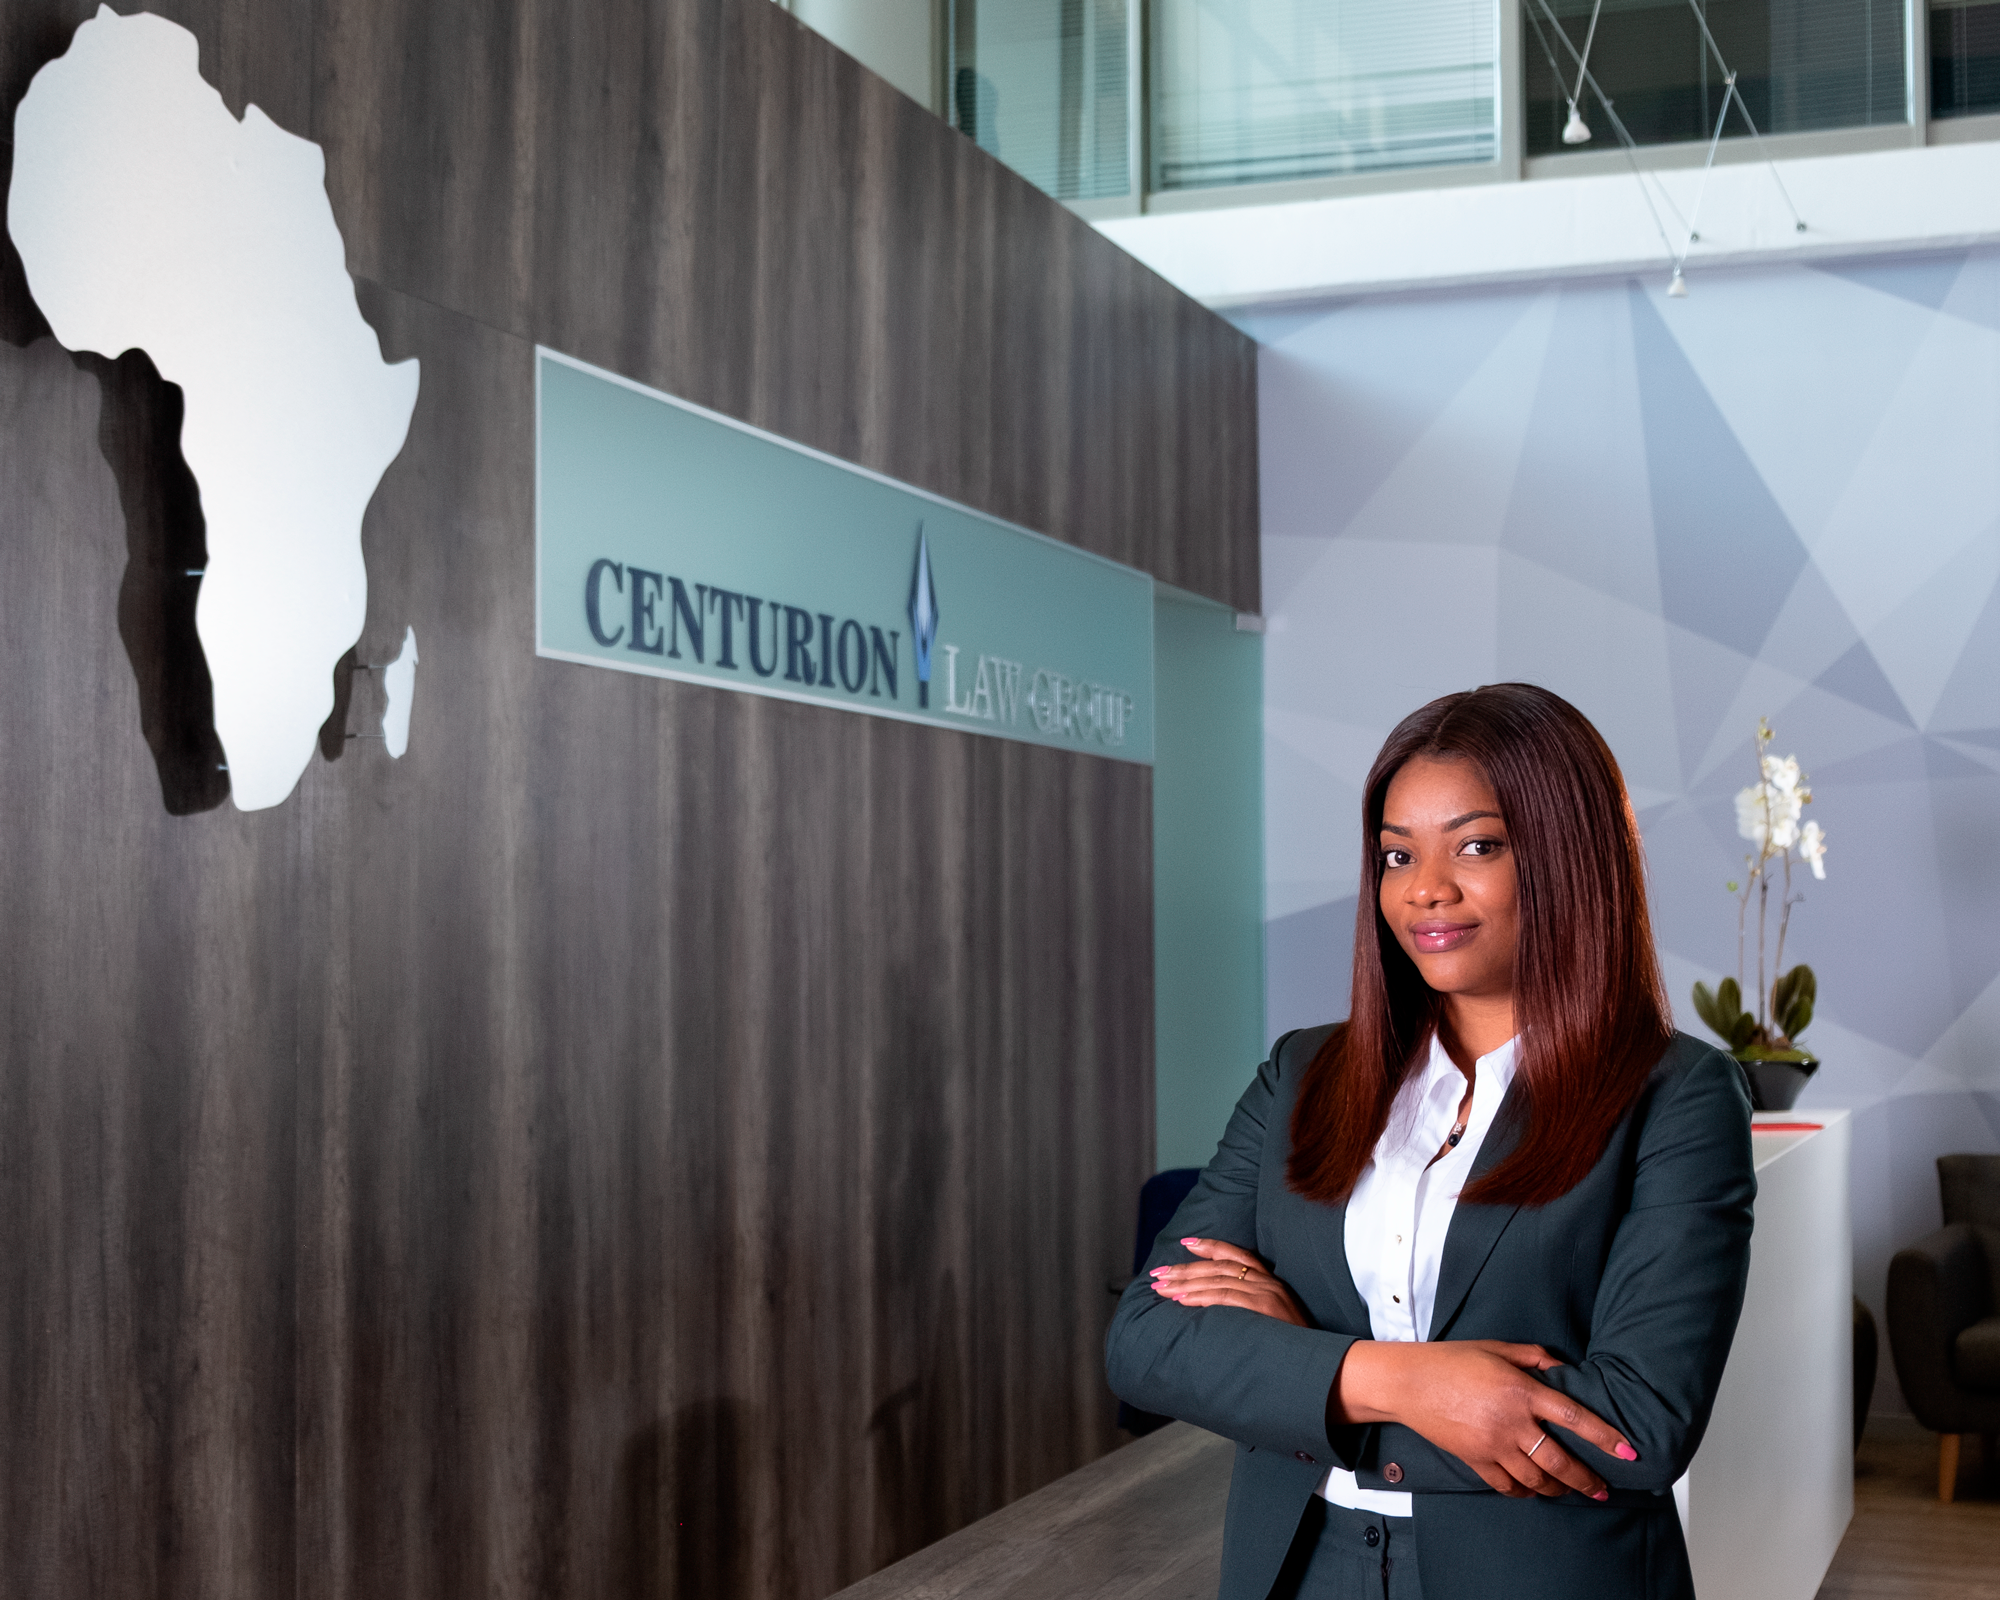 Centurion Law Group